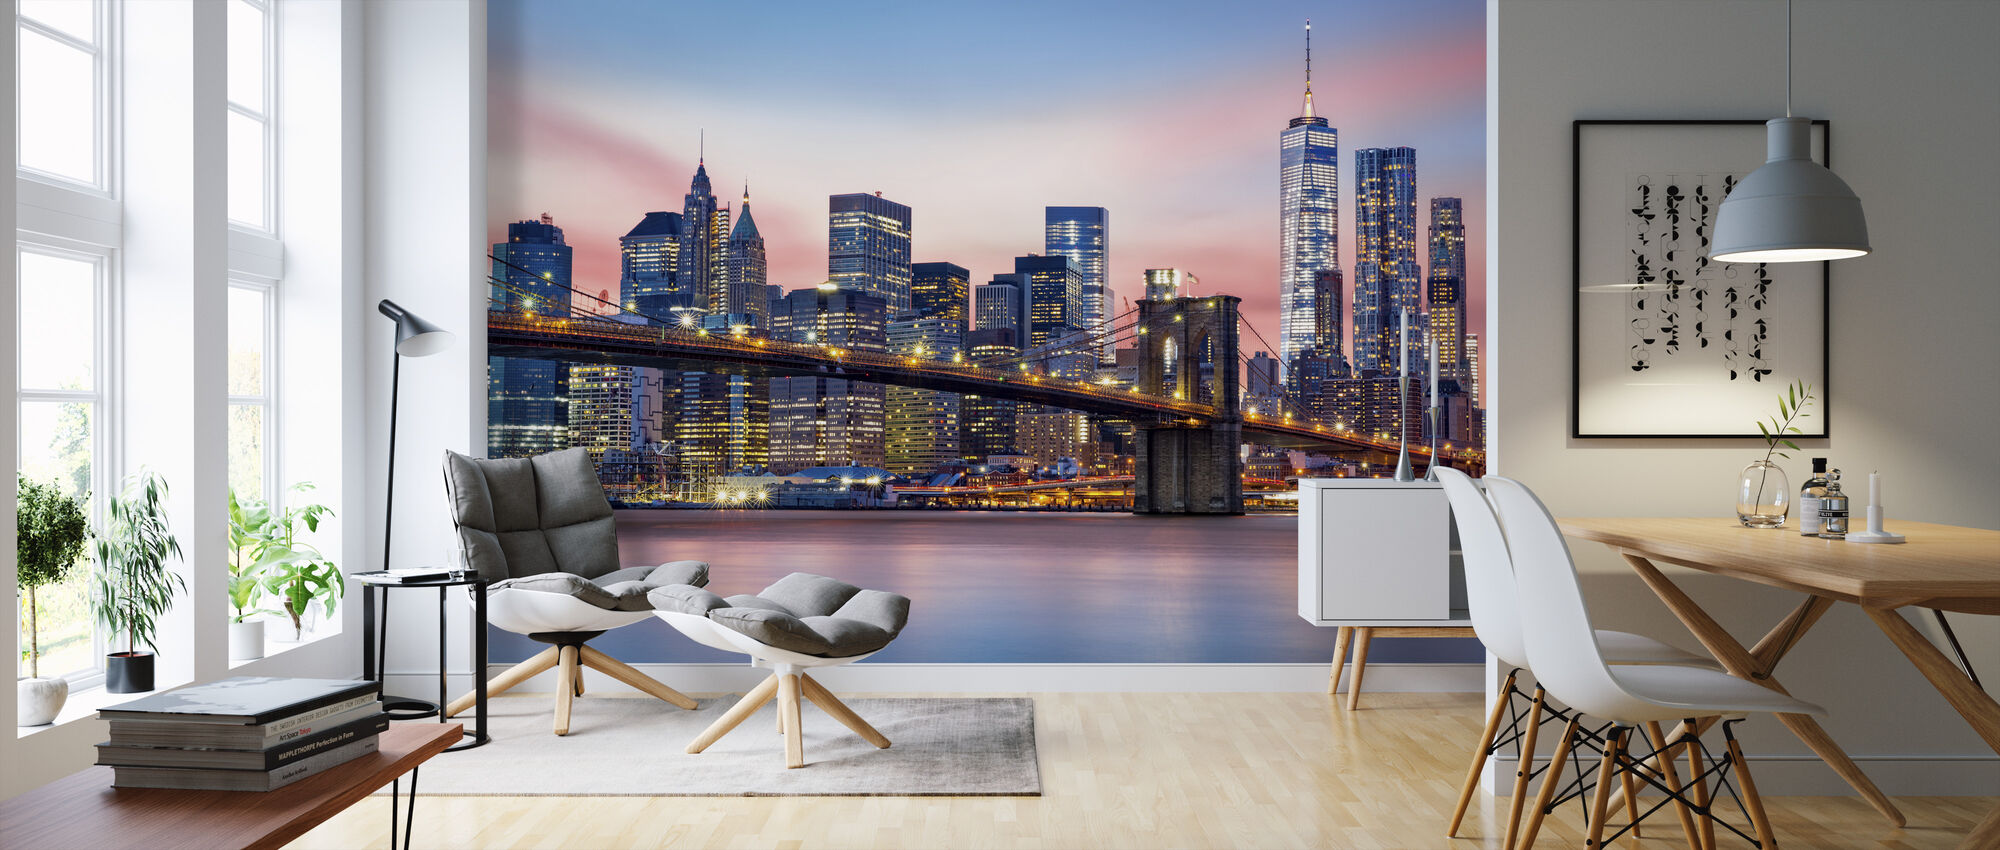 Lower Manhattan Skyline - Wallpaper - Living Room